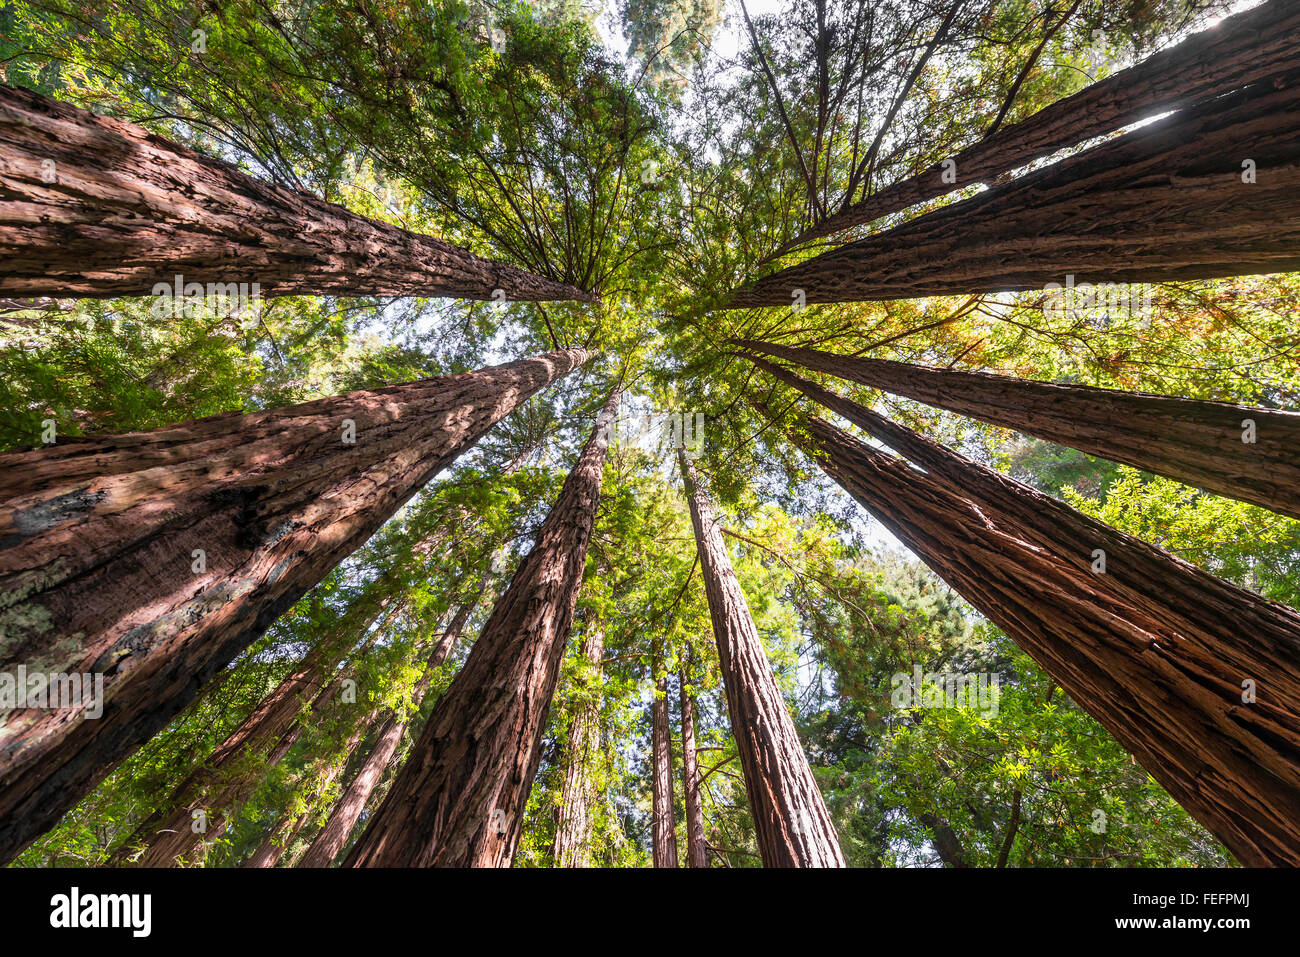 Coast redwoods (Sequoia sempervirens), tree canopy, Muir Woods National Park, California, USA Stock Photo